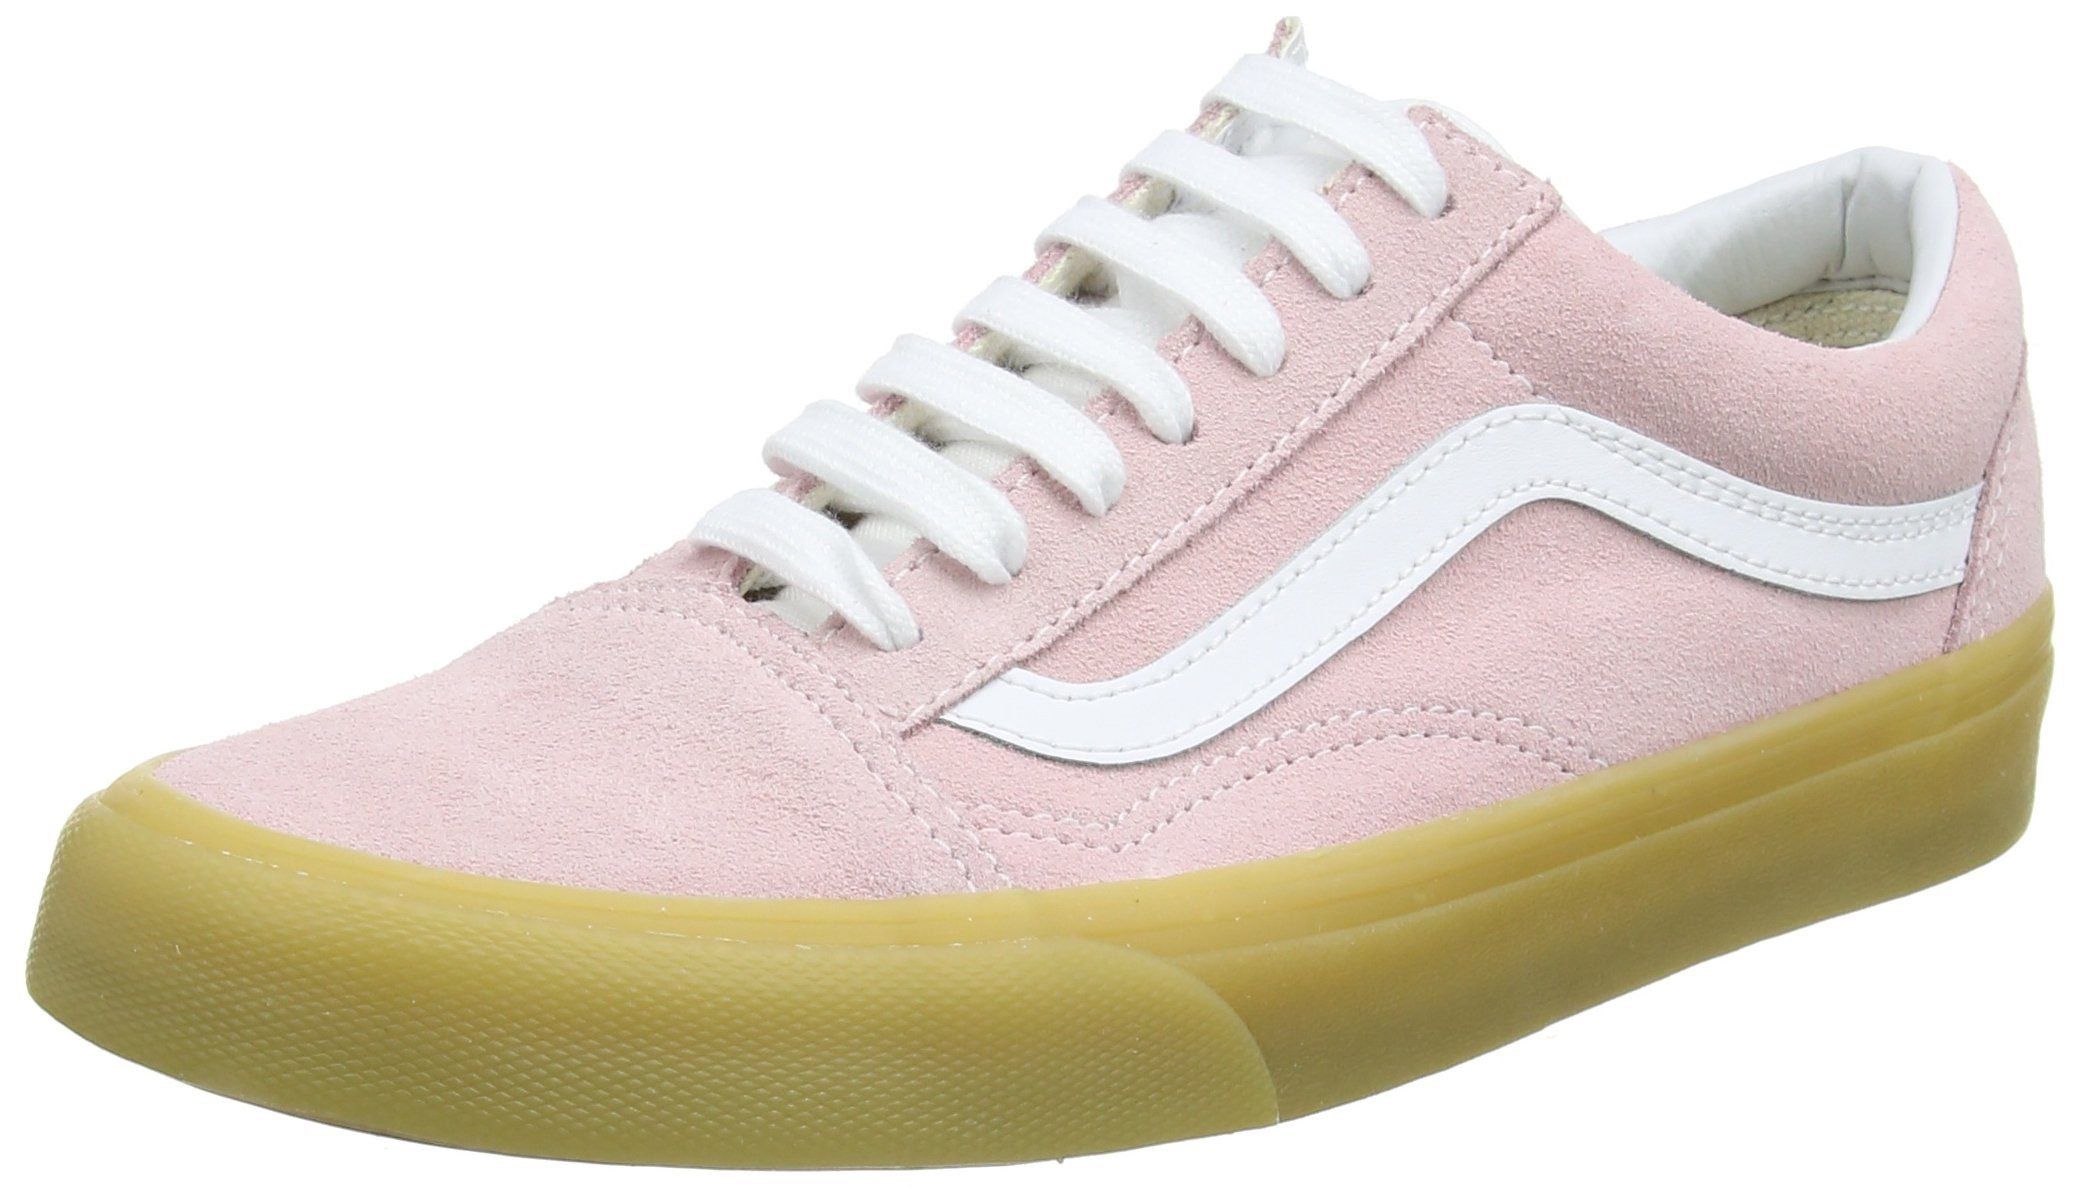 df0efef470a8eb Galleon - Vans Old Skool Double Light Gum Womens Trainers Pink White - 4.5  UK